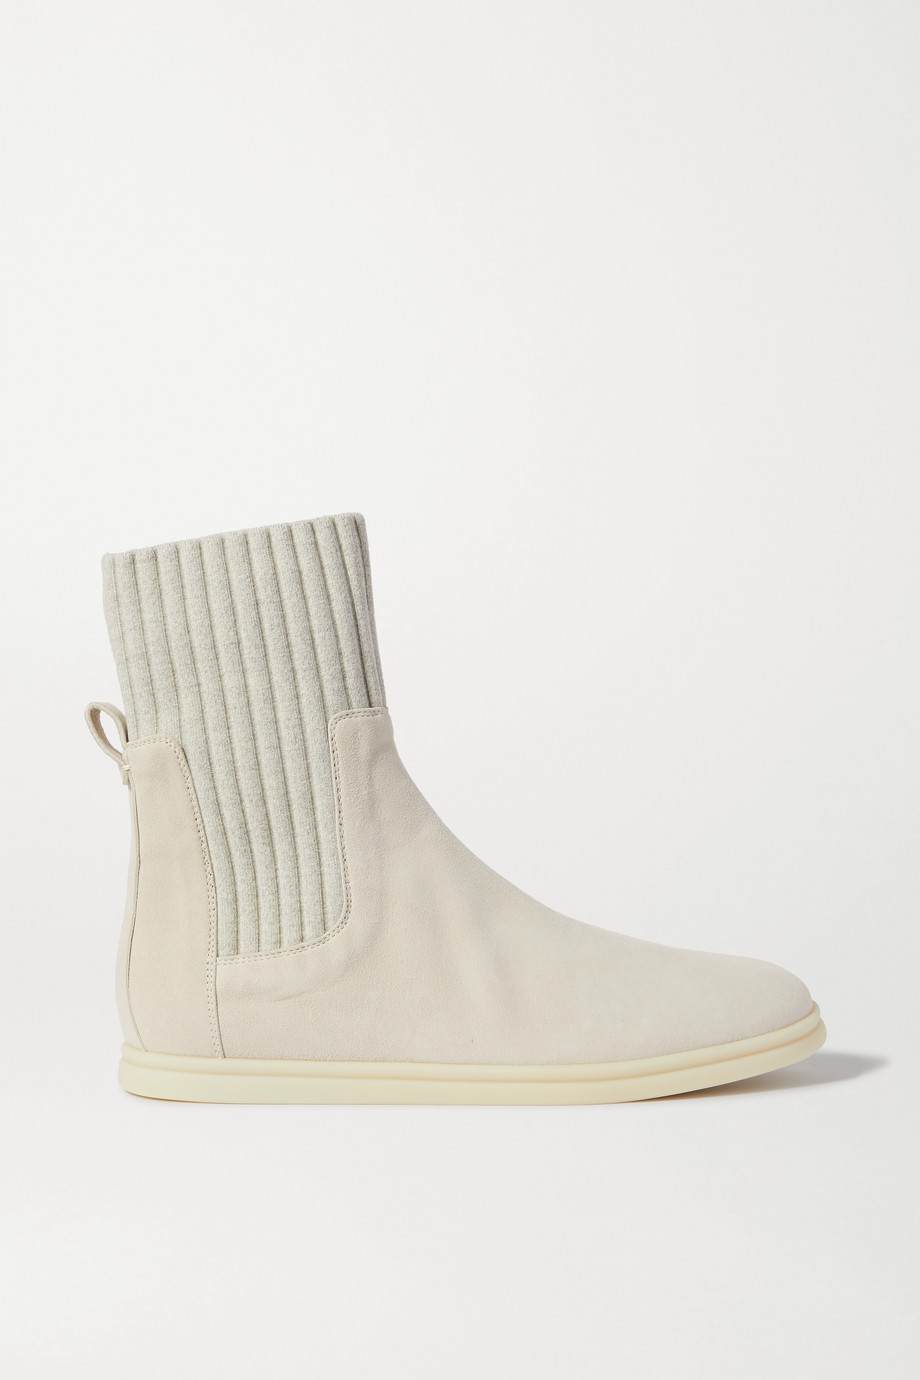 Loro Piana Cocoon suede and ribbed wool ankle boots